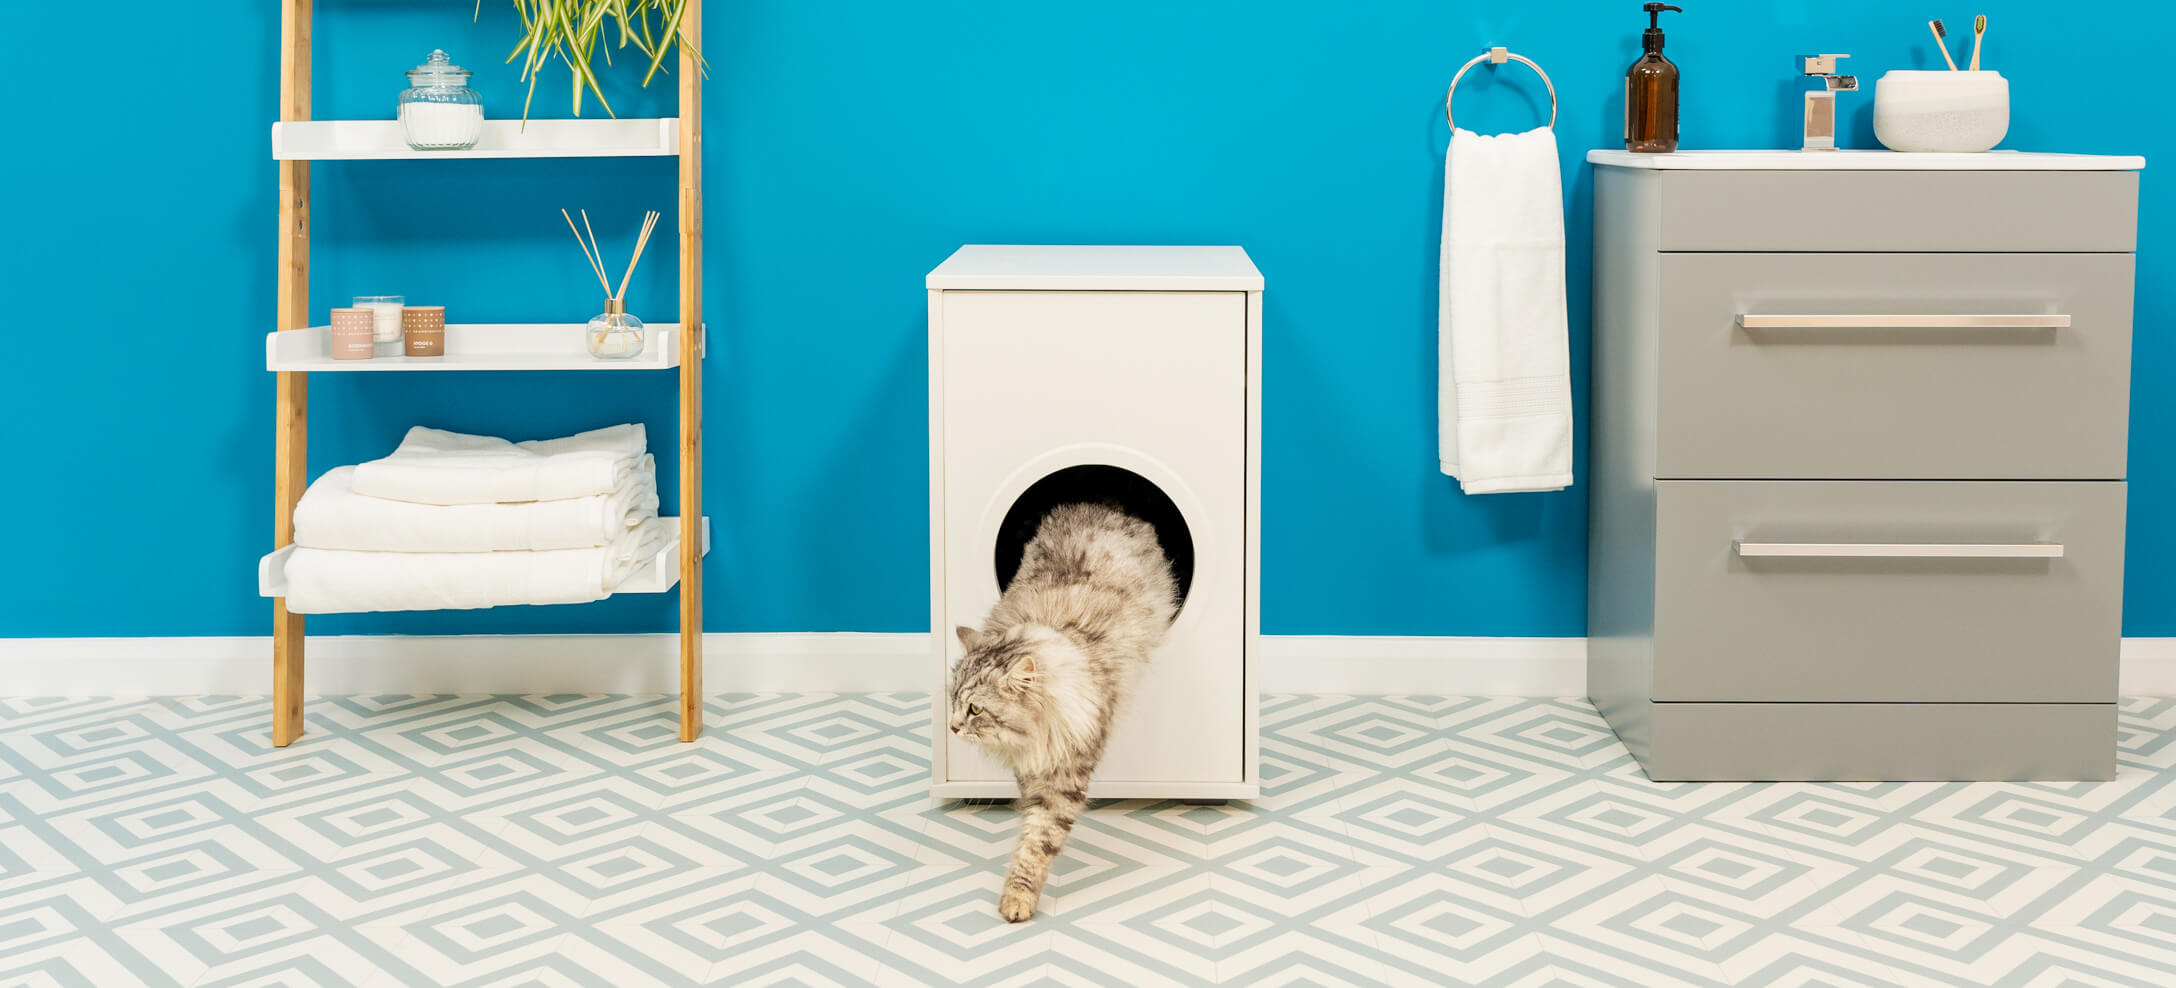 """A grey cat walking out of an enclosed litter box"""" data-image-id="""